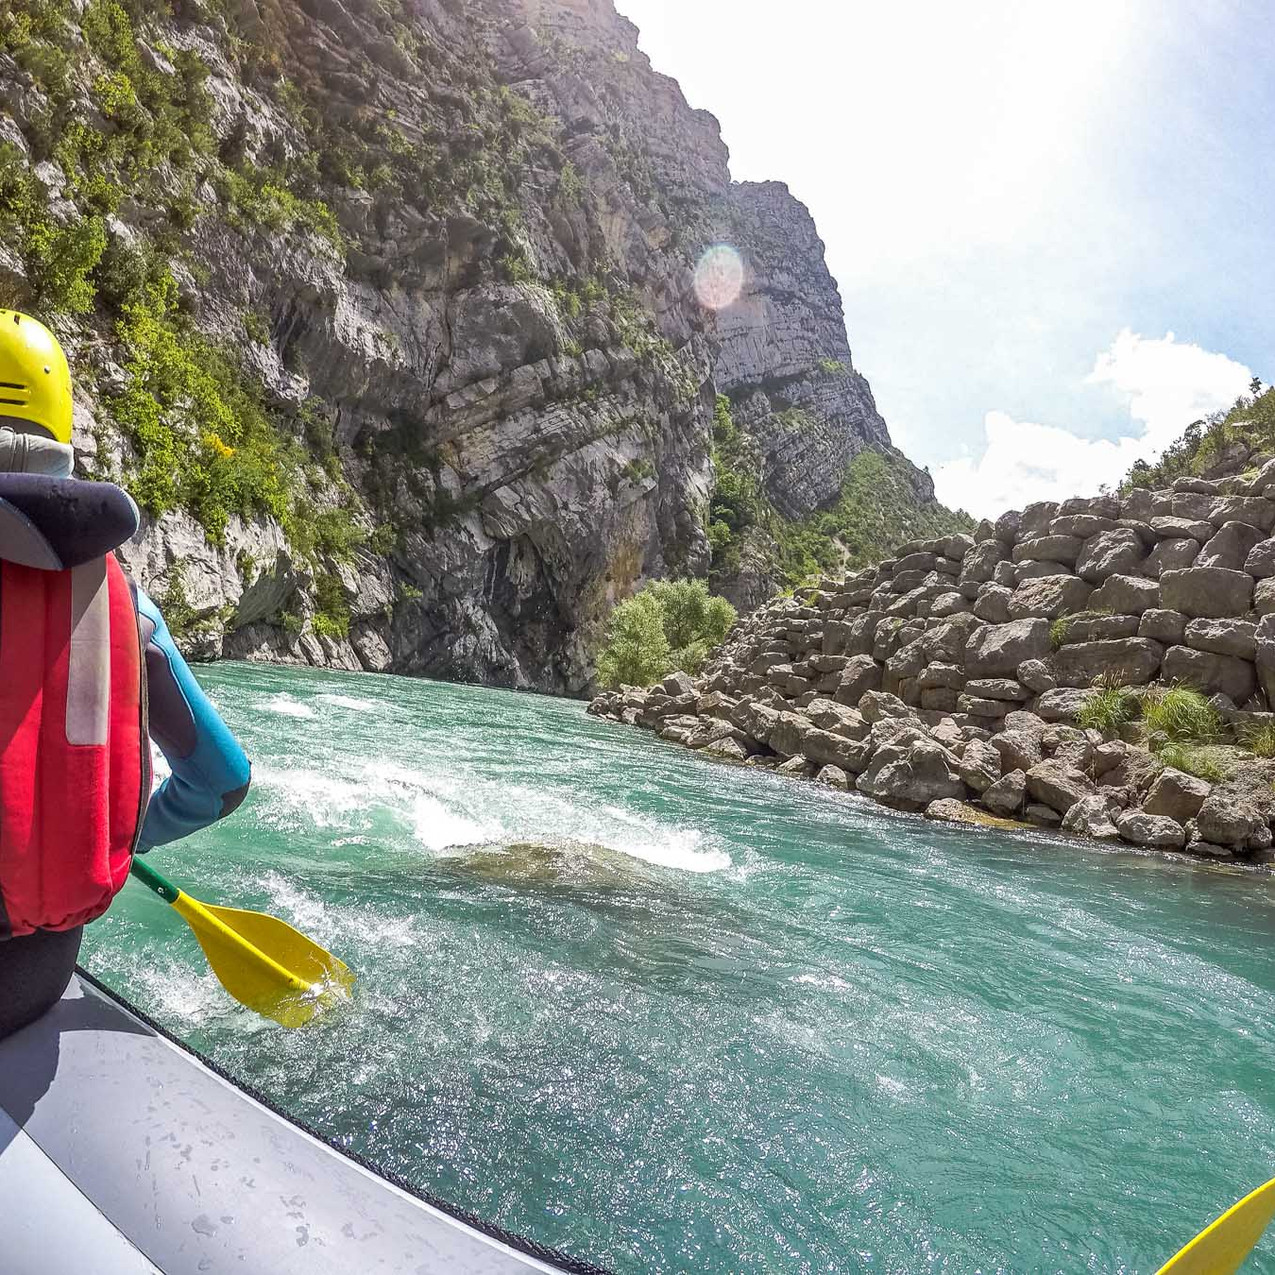 Rafting Gorges du Verdon